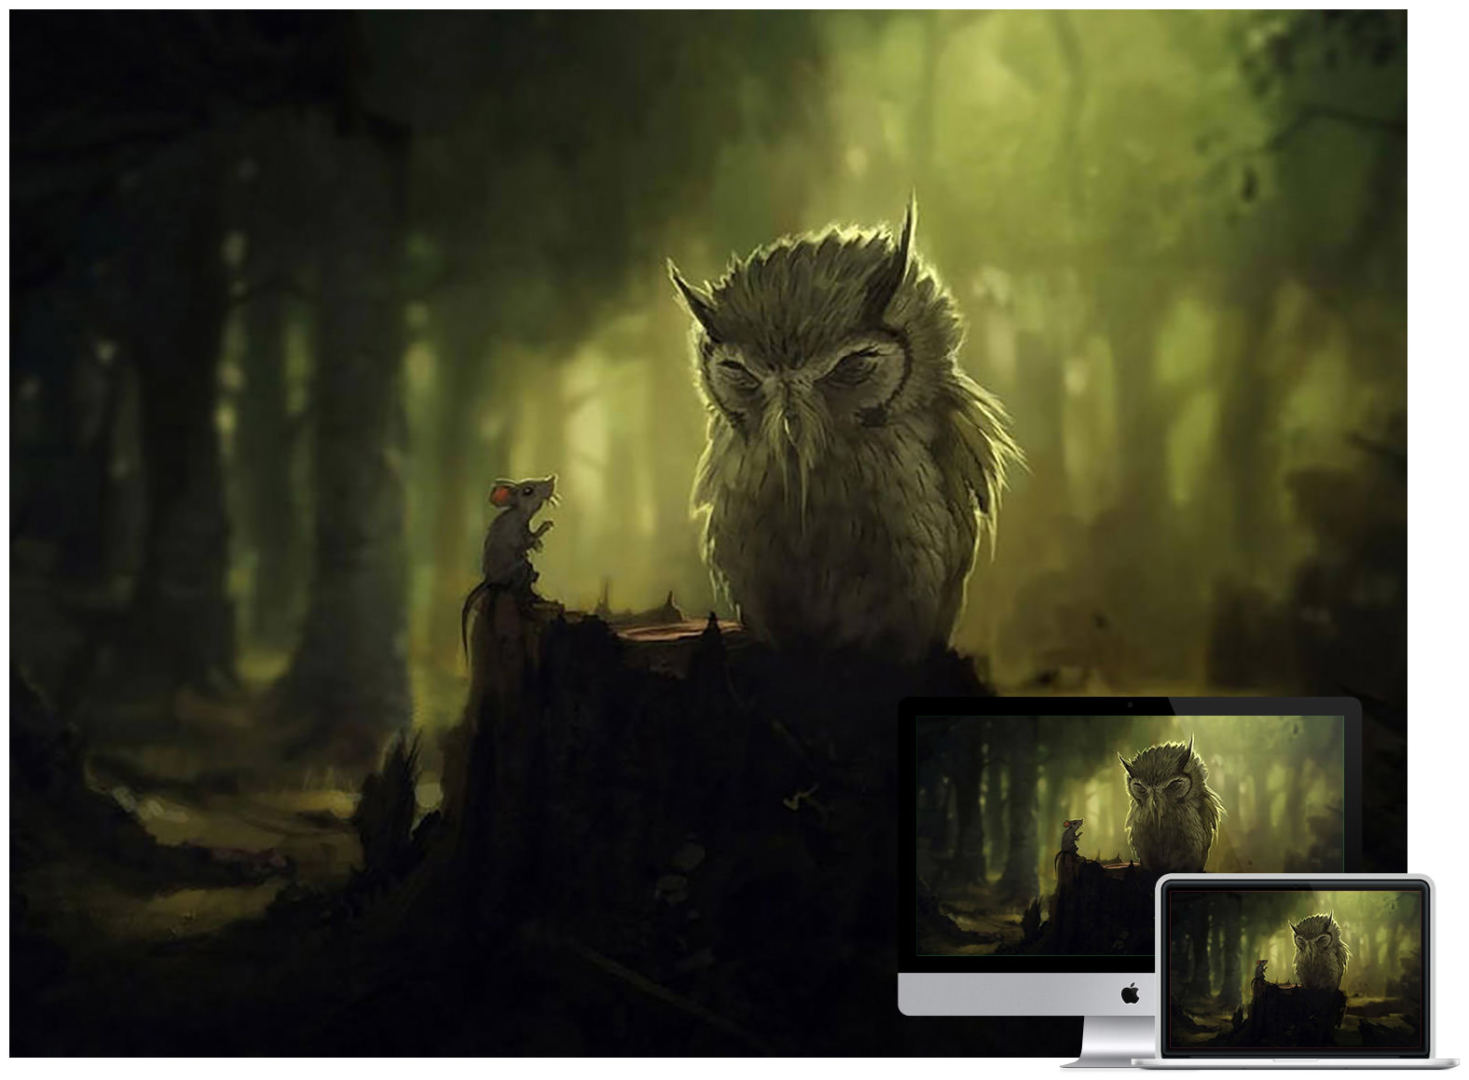 owl-in-forest-wallpaper